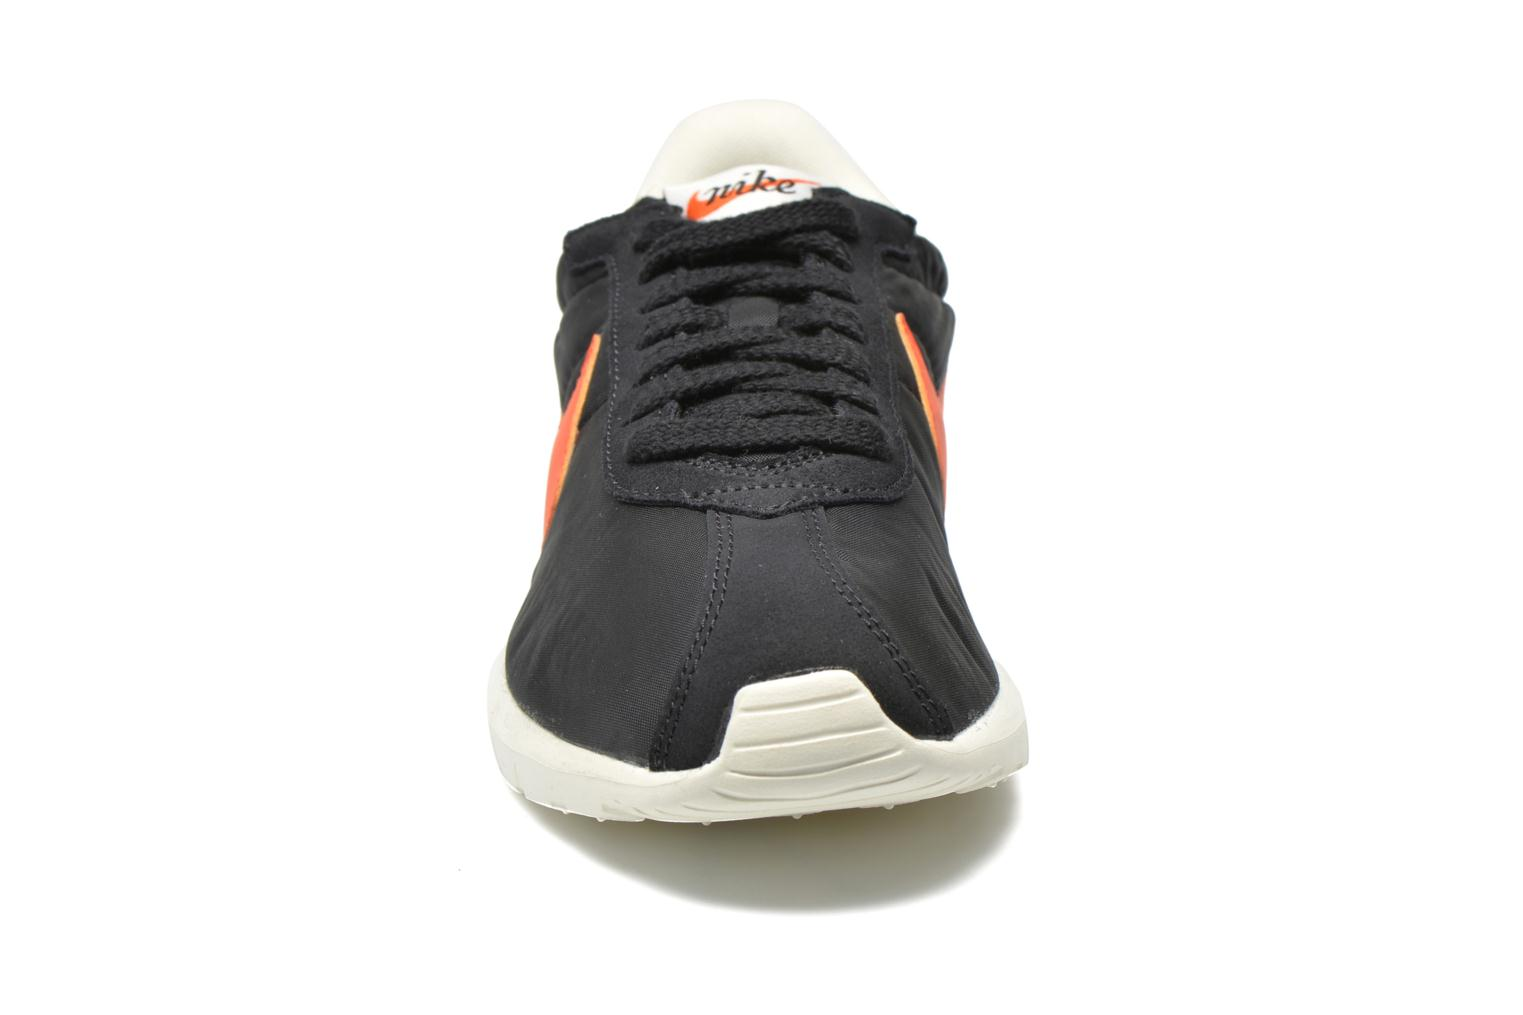 Nike Roshe Ld-1000 Black/Team Orange-Sail-Black